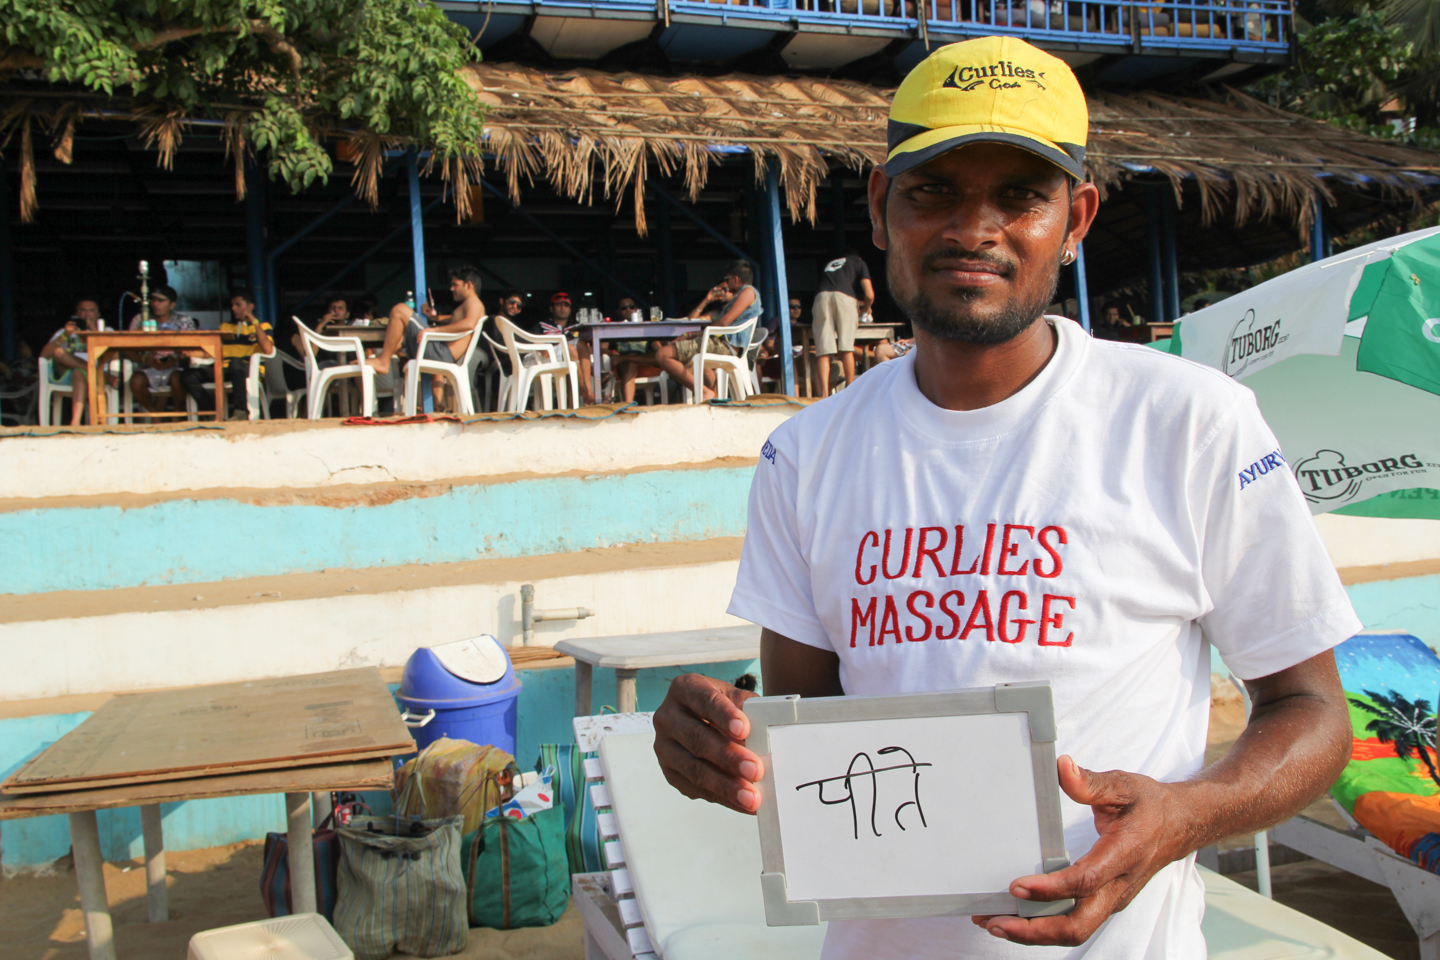 Manju left his village in Madhya Pradesh for the beaches in Goa. He works at one of Anjuna's most famous oceanside shacks, Curlies, where he is an official masseur.